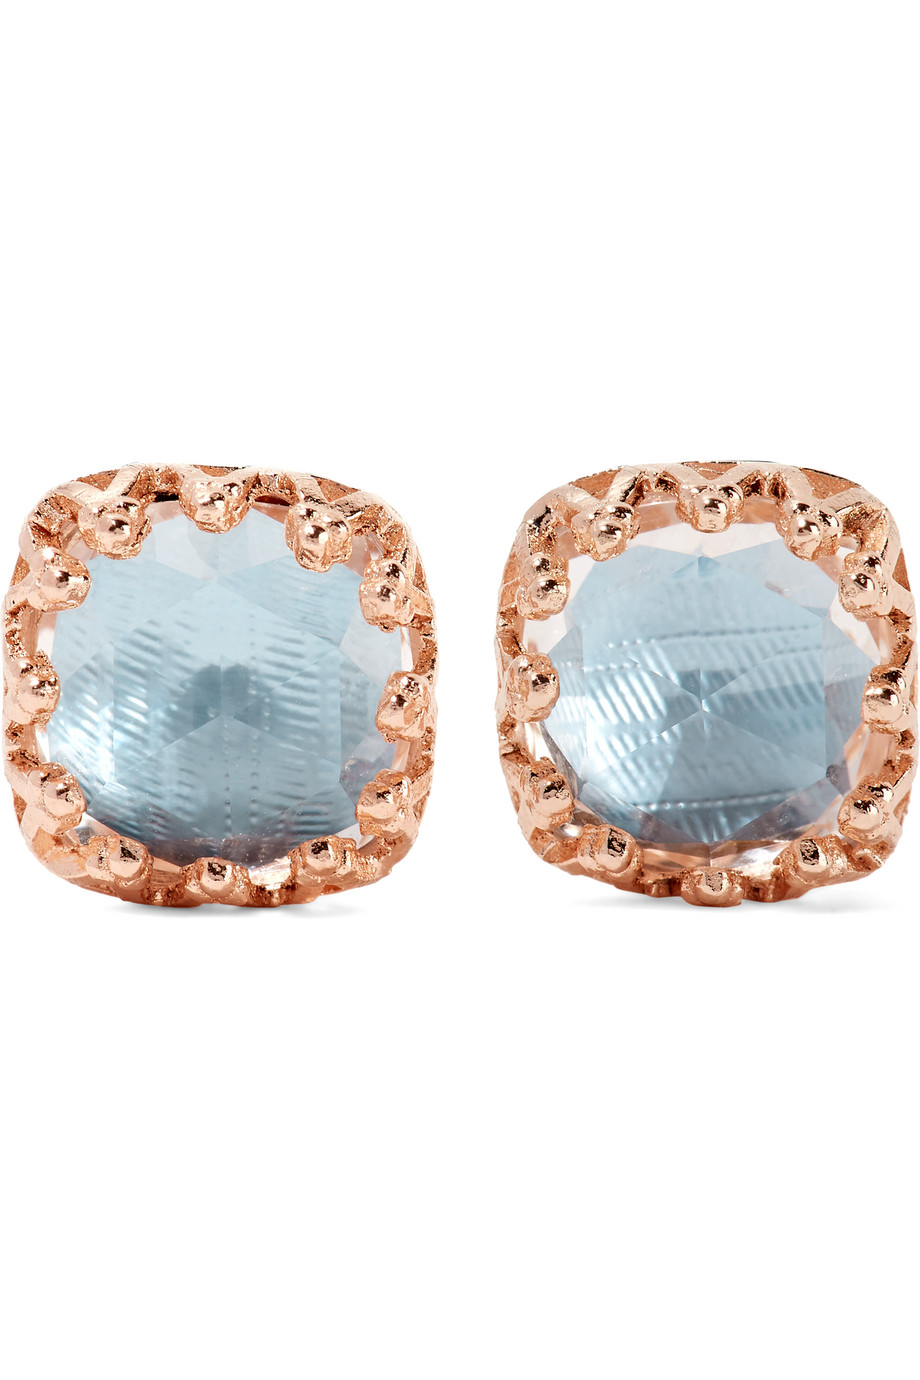 Larkspur & Hawk Jane Small Rose Gold-Dipped Quartz Earrings, Rose Gold/Light Blue, Women's